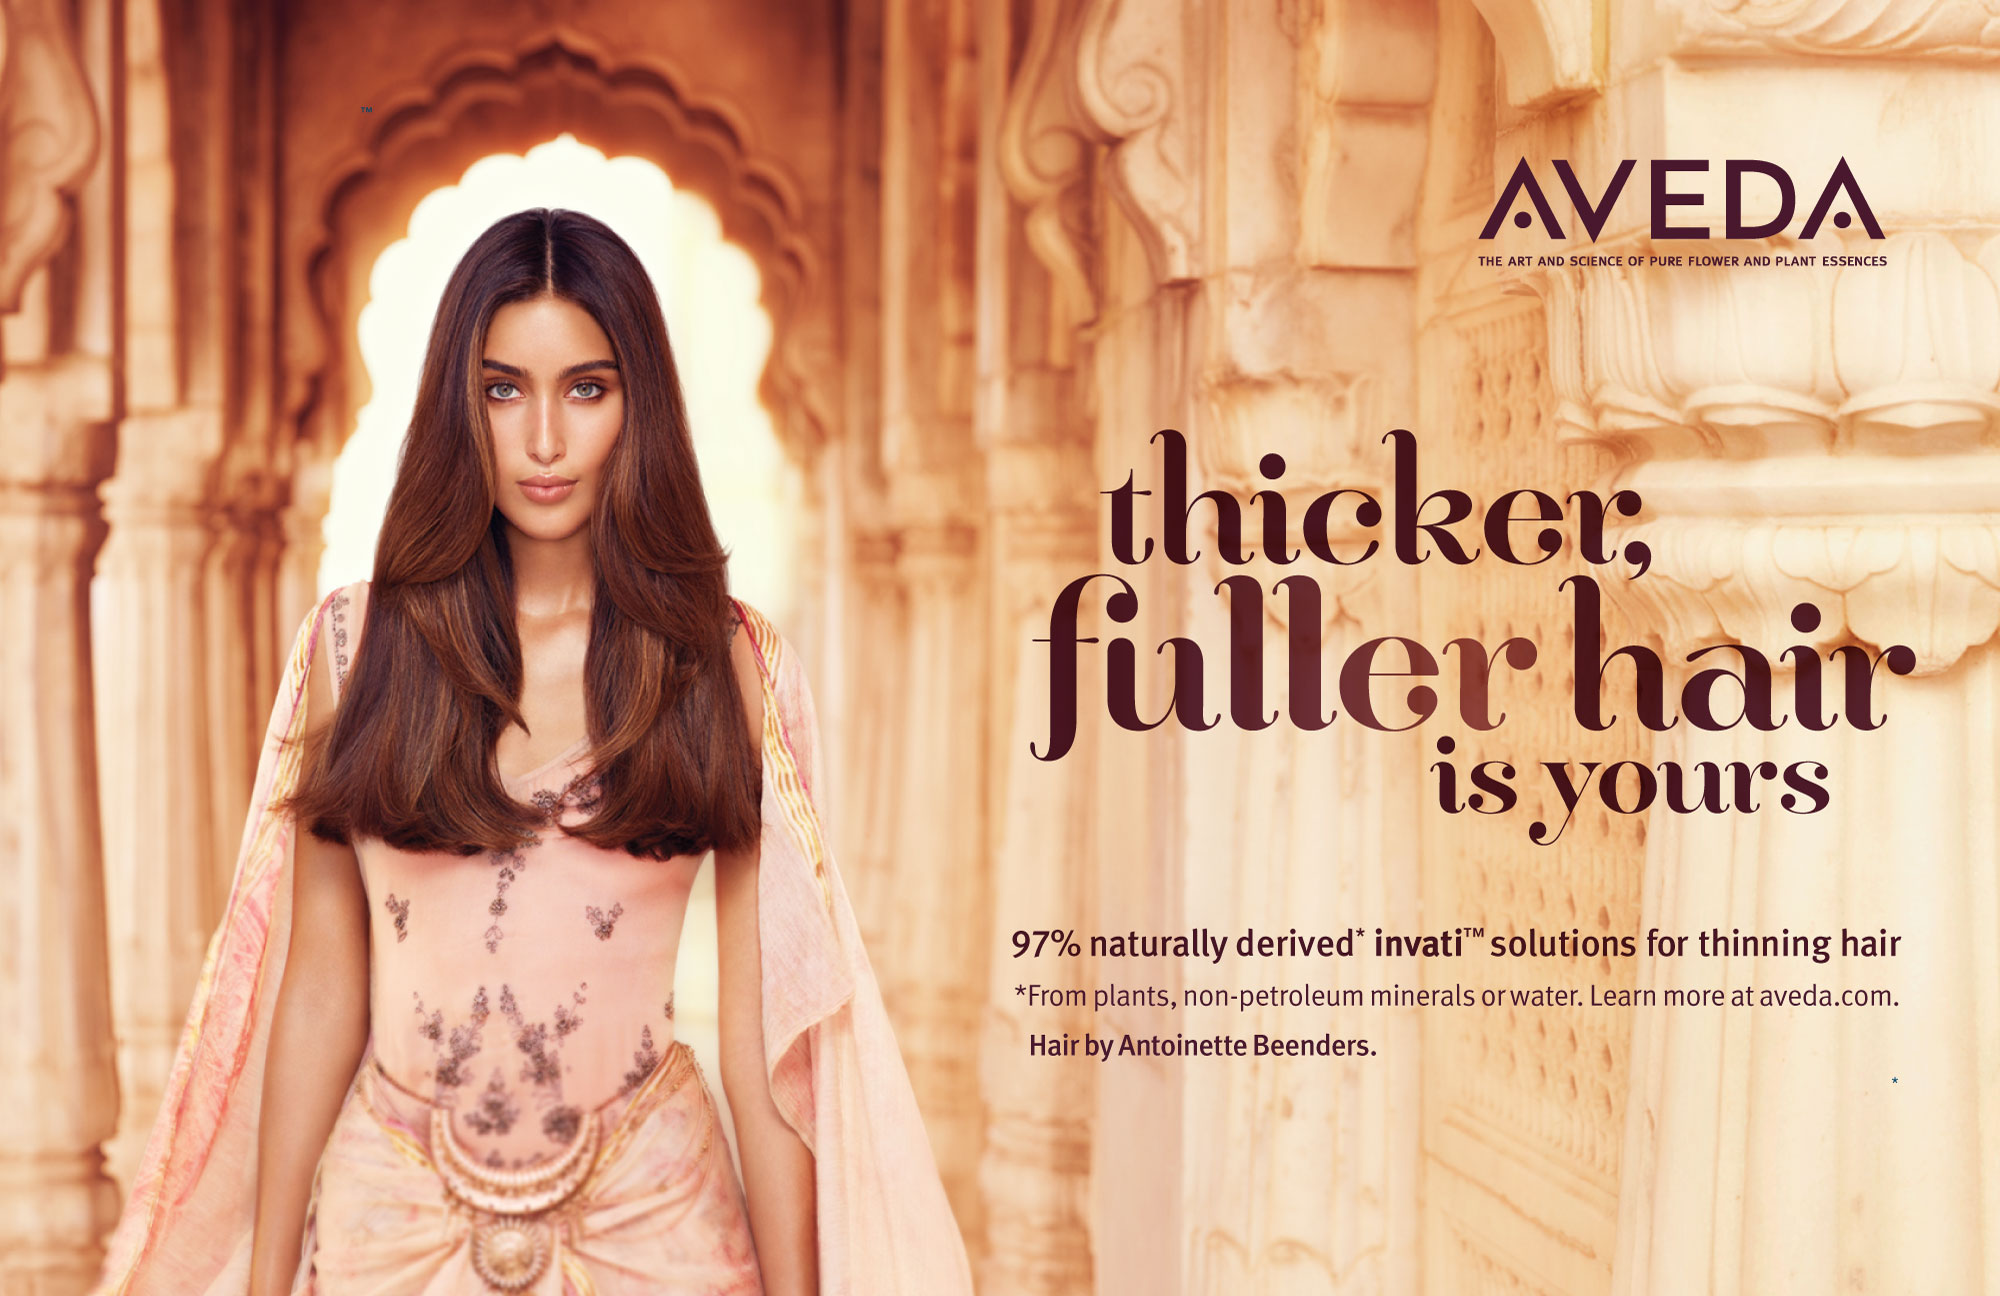 AVEDA - thicker, fuller hair is yours. 97% naturally derived invatiTM solutions for thinning hair *From plants, non-petroleum minerals or water. Learn more at aveda.com. Hair by Anoinette Beenders.